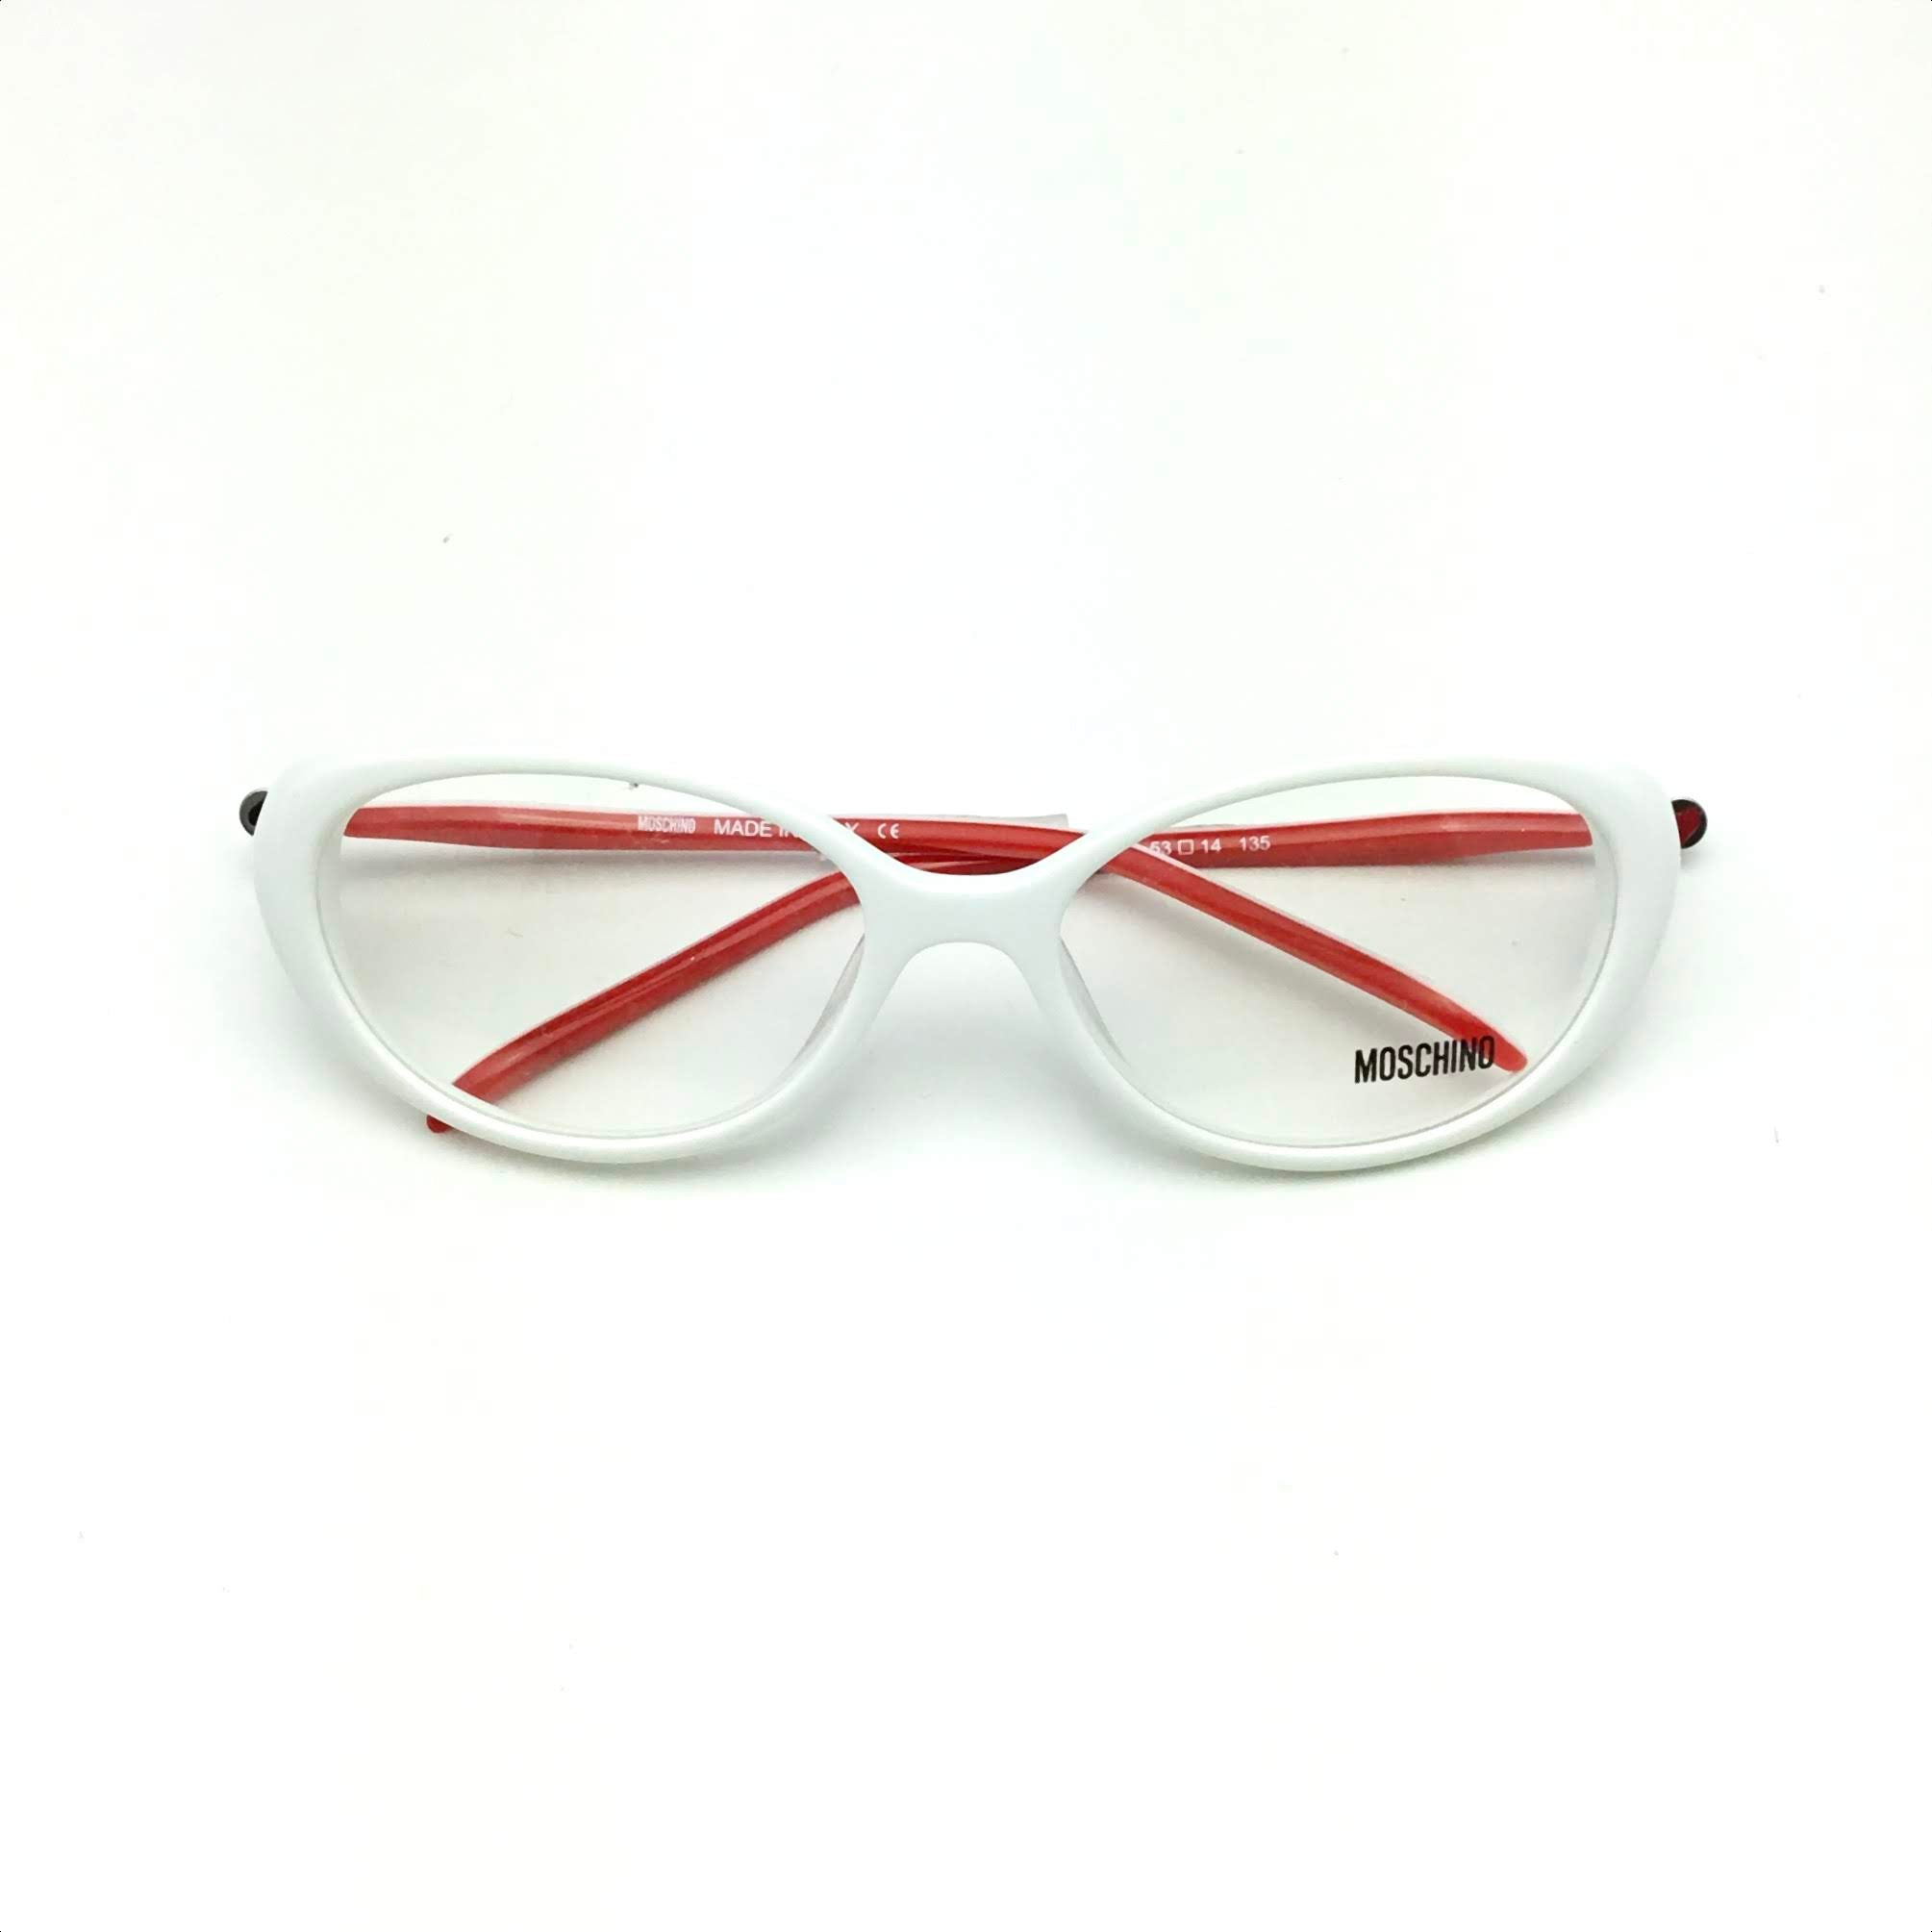 Moschino Glasses $109 ITALY D6